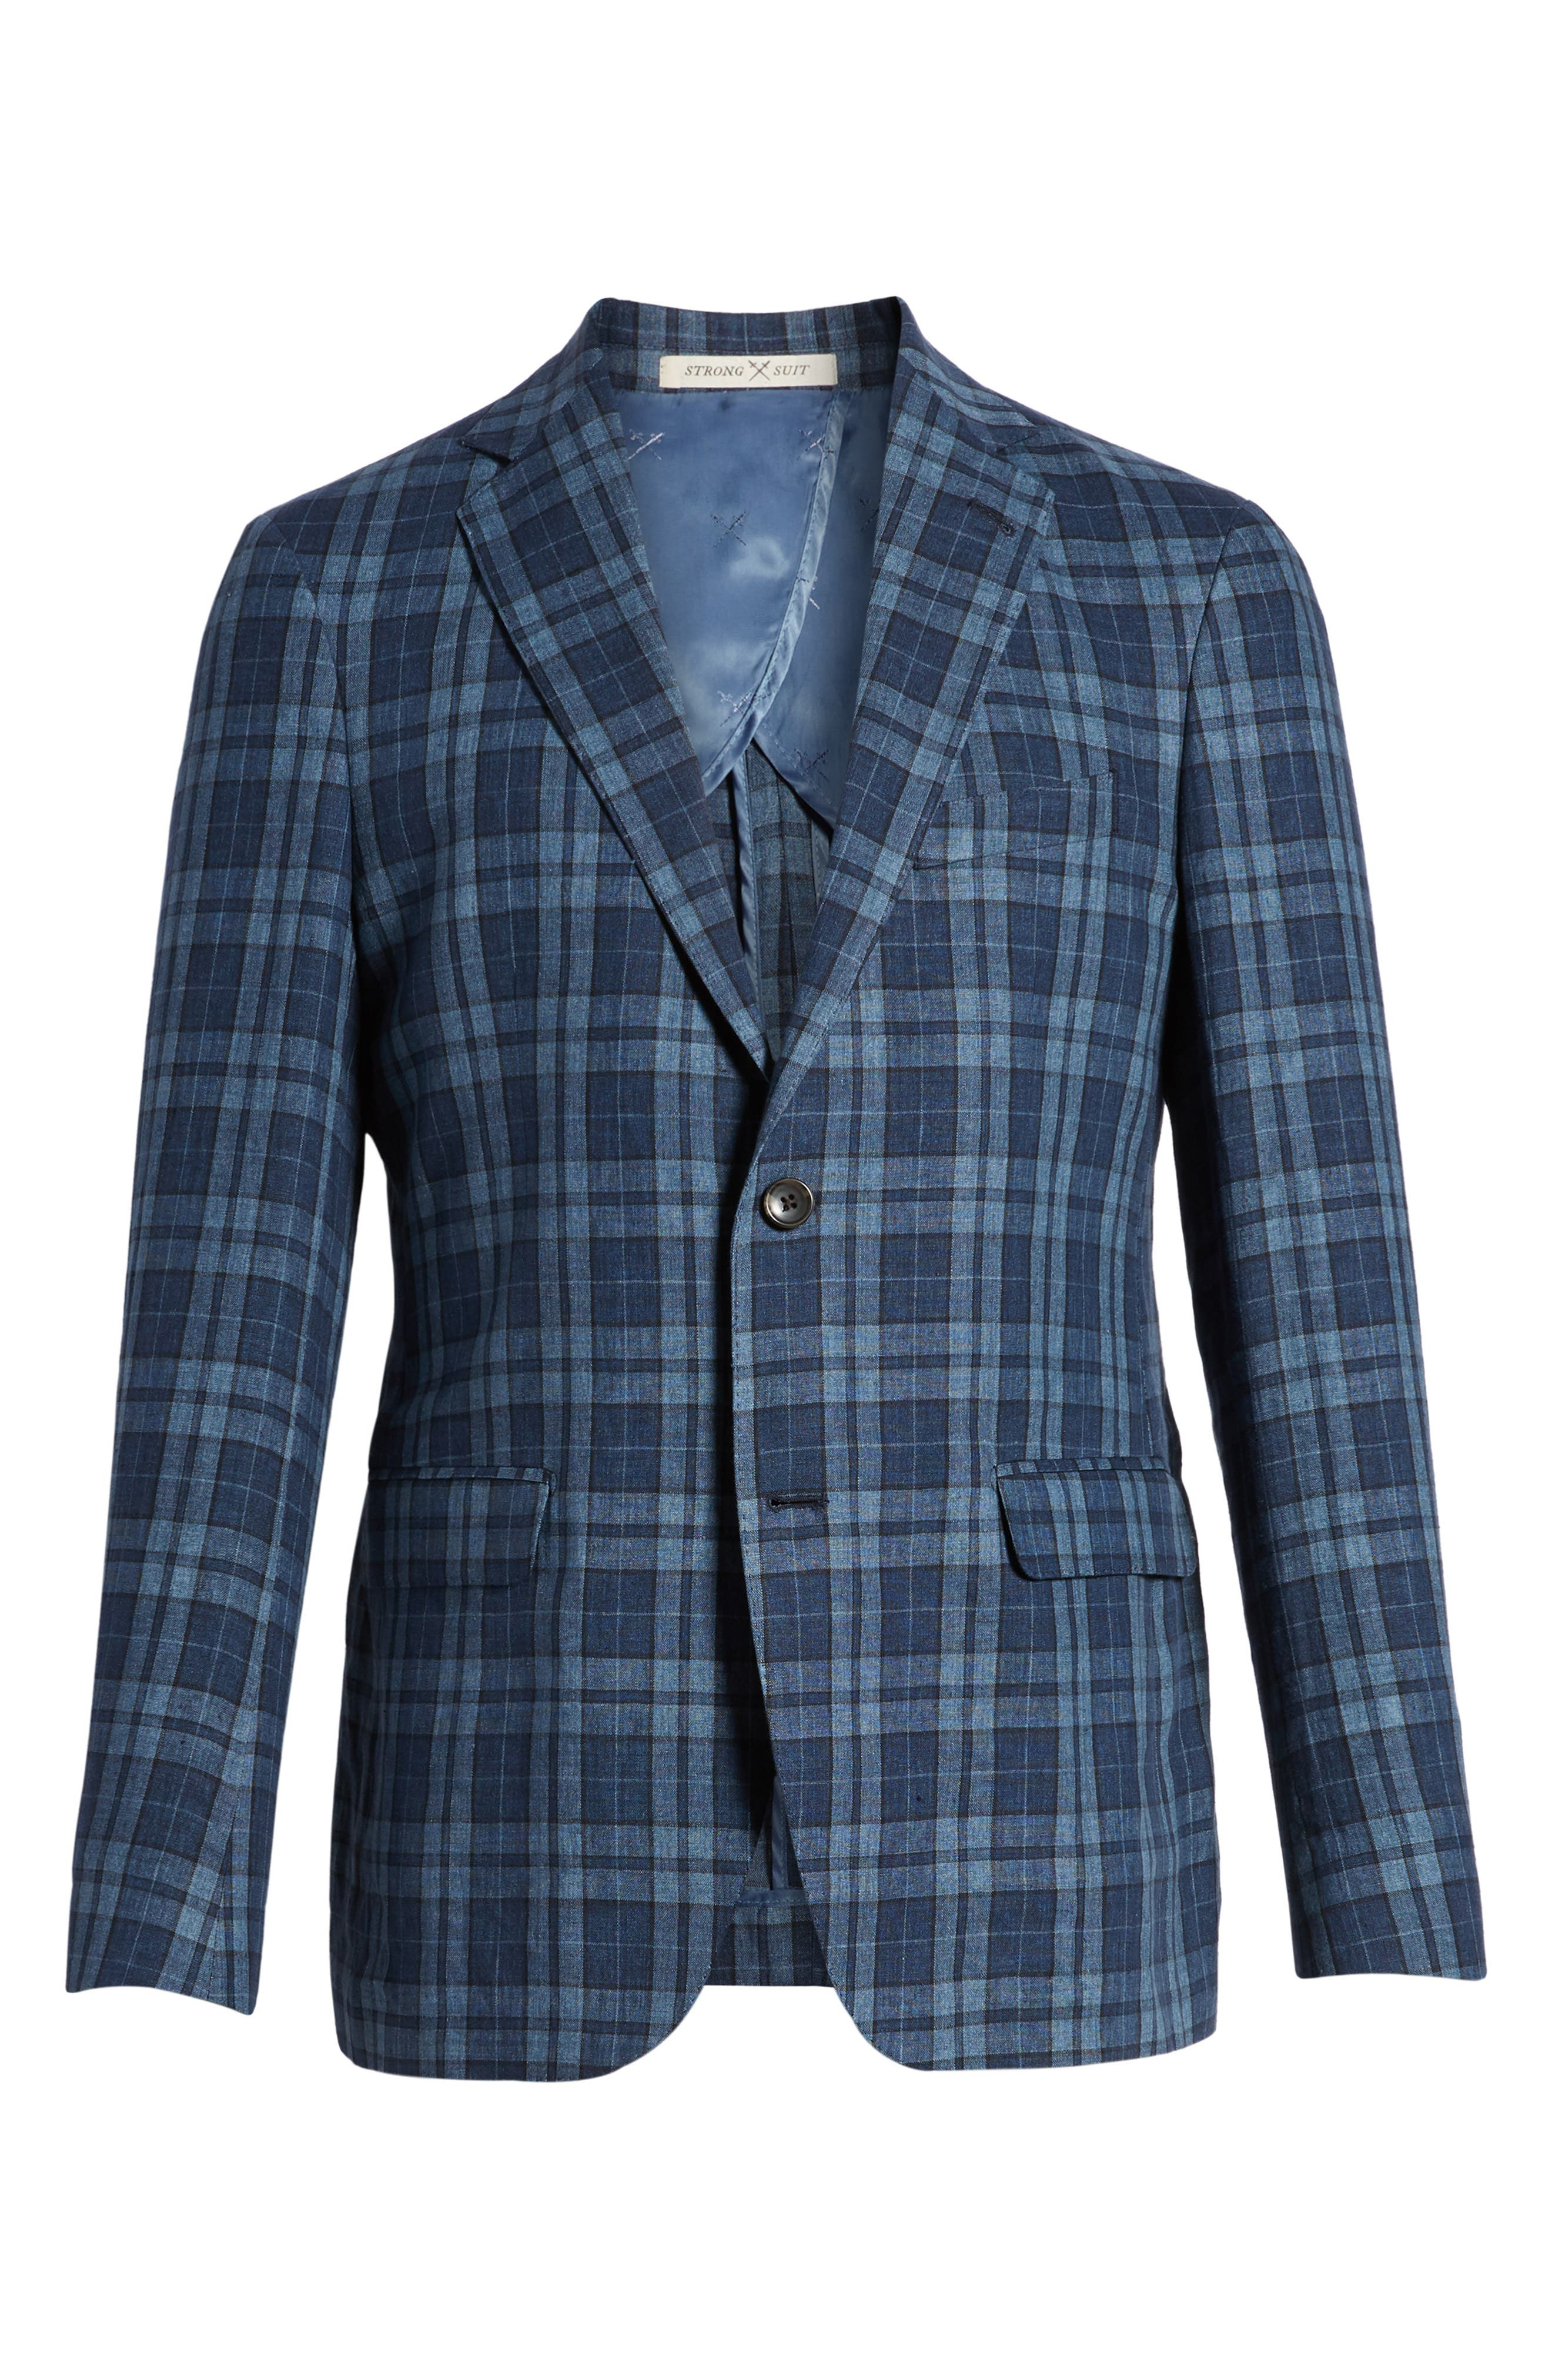 Vanquish Trim Fit Plaid Linen Sport Coat,                             Alternate thumbnail 5, color,